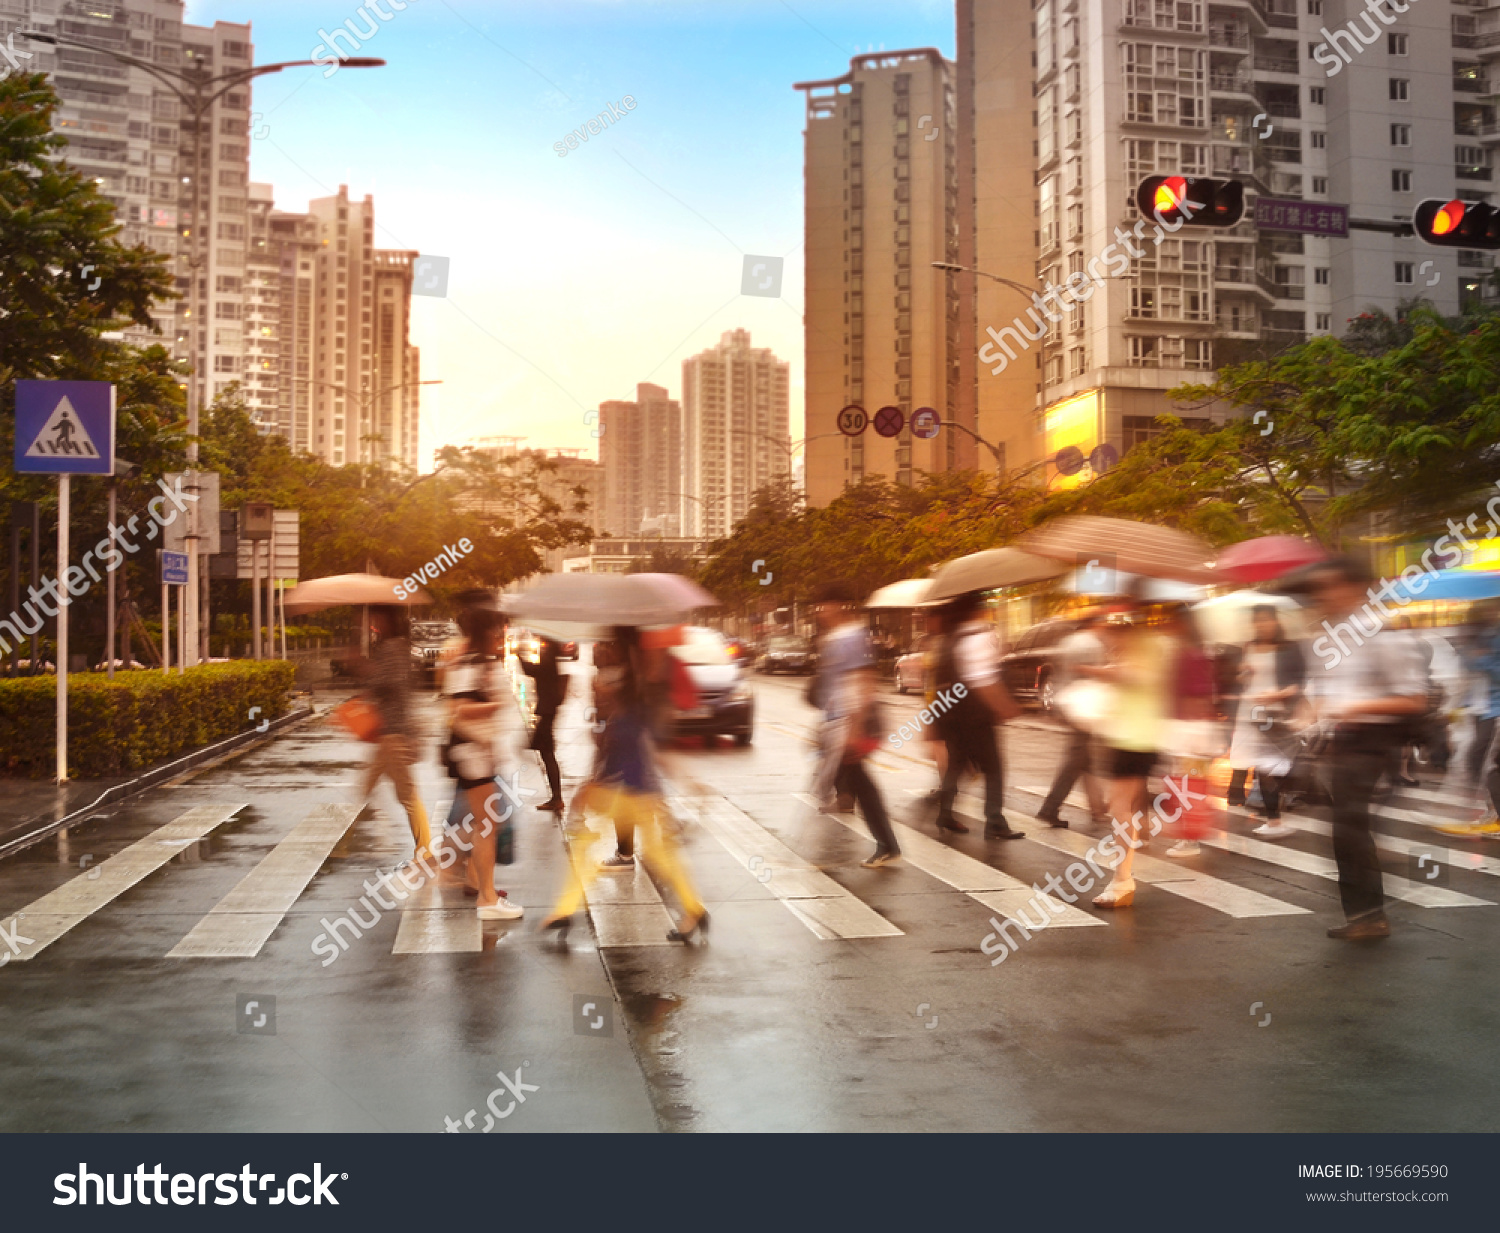 a busy city street essay Descriptive essay on a busy street in your this essay will focus on the differences and inequalities that exist between renshaw st, liverpool, and city rd.